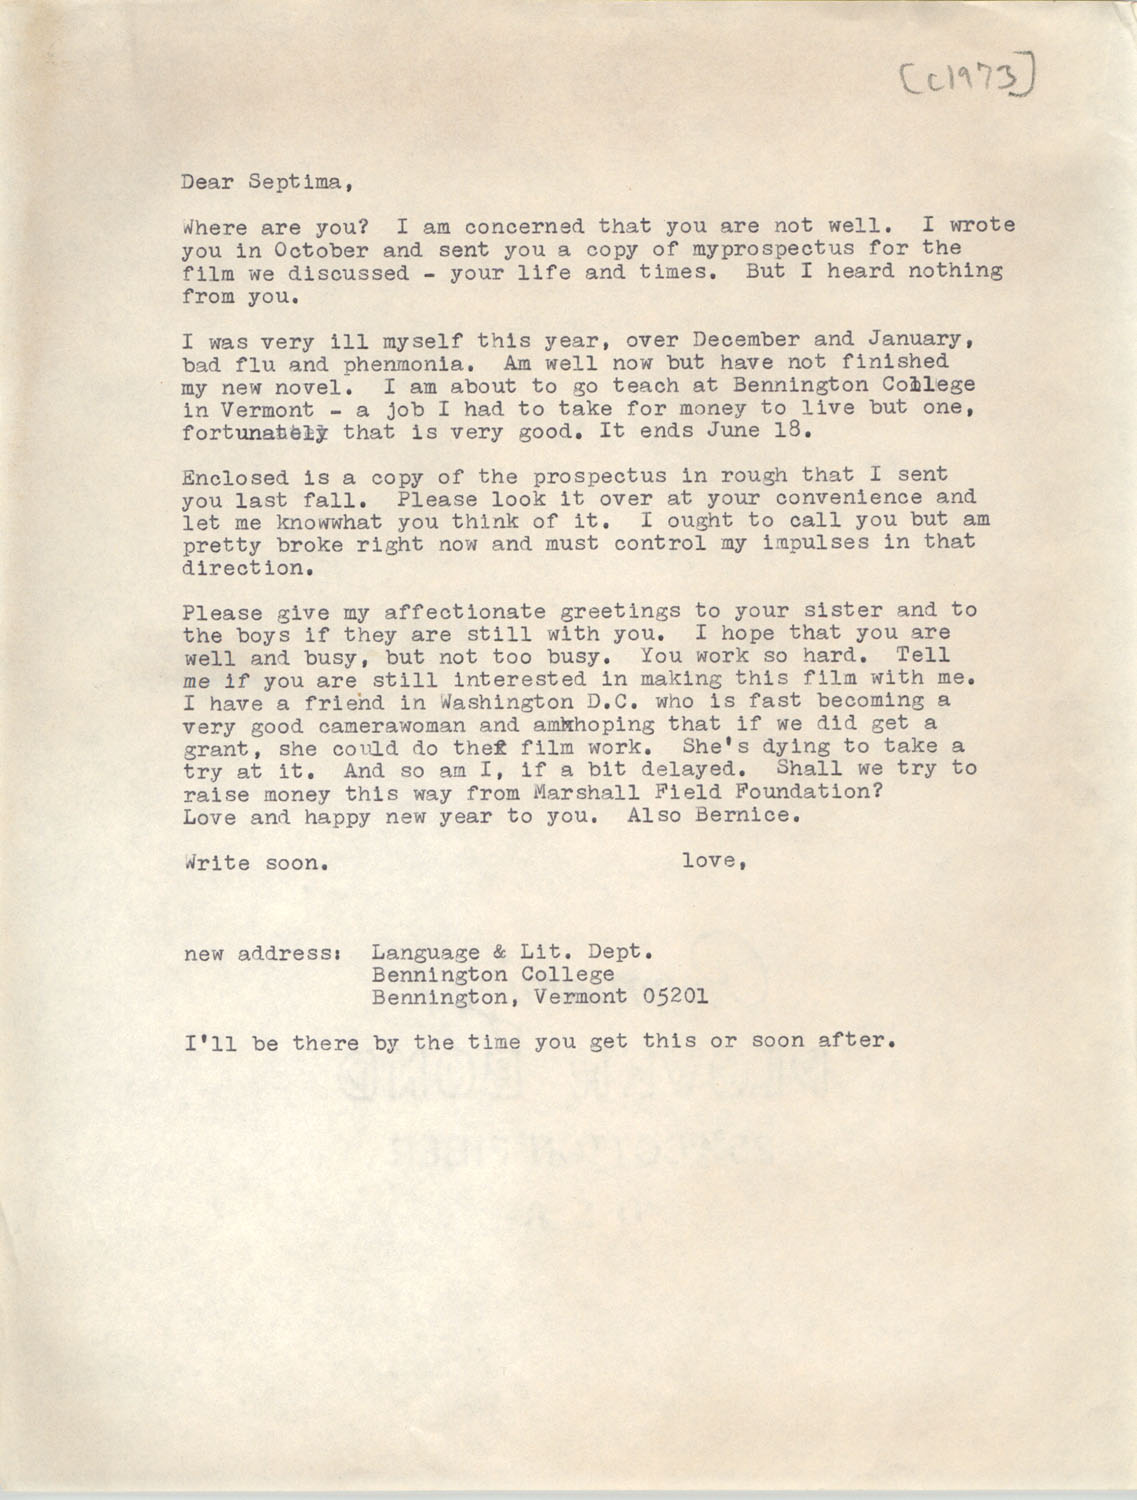 Letter from Josephine Rider to Septima P. Clark, 1973